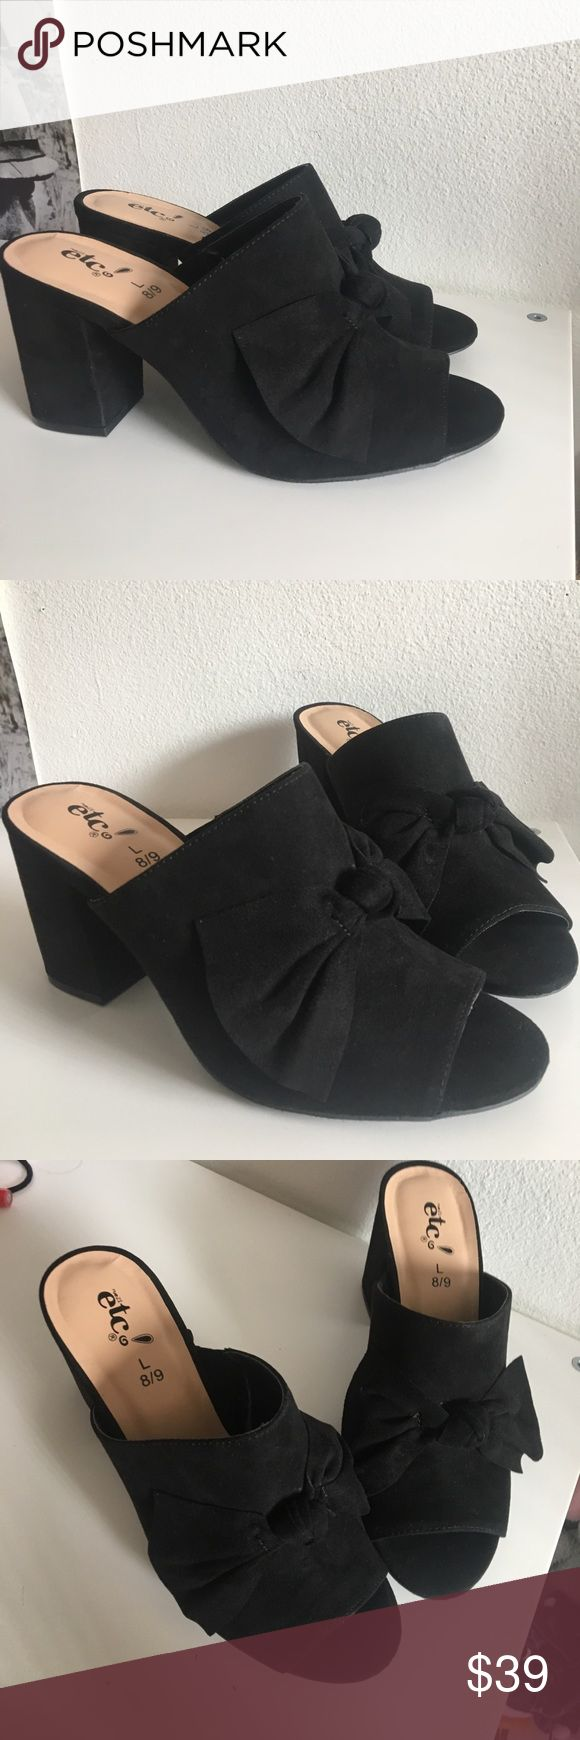 """Suede Bow Open Toed Mule Heels Heel height approx 3.5"""". Brand new! Only tried on. Size 8/9 Large. New with stickers/ no tag. Boutique Shoes Mules & Clogs"""